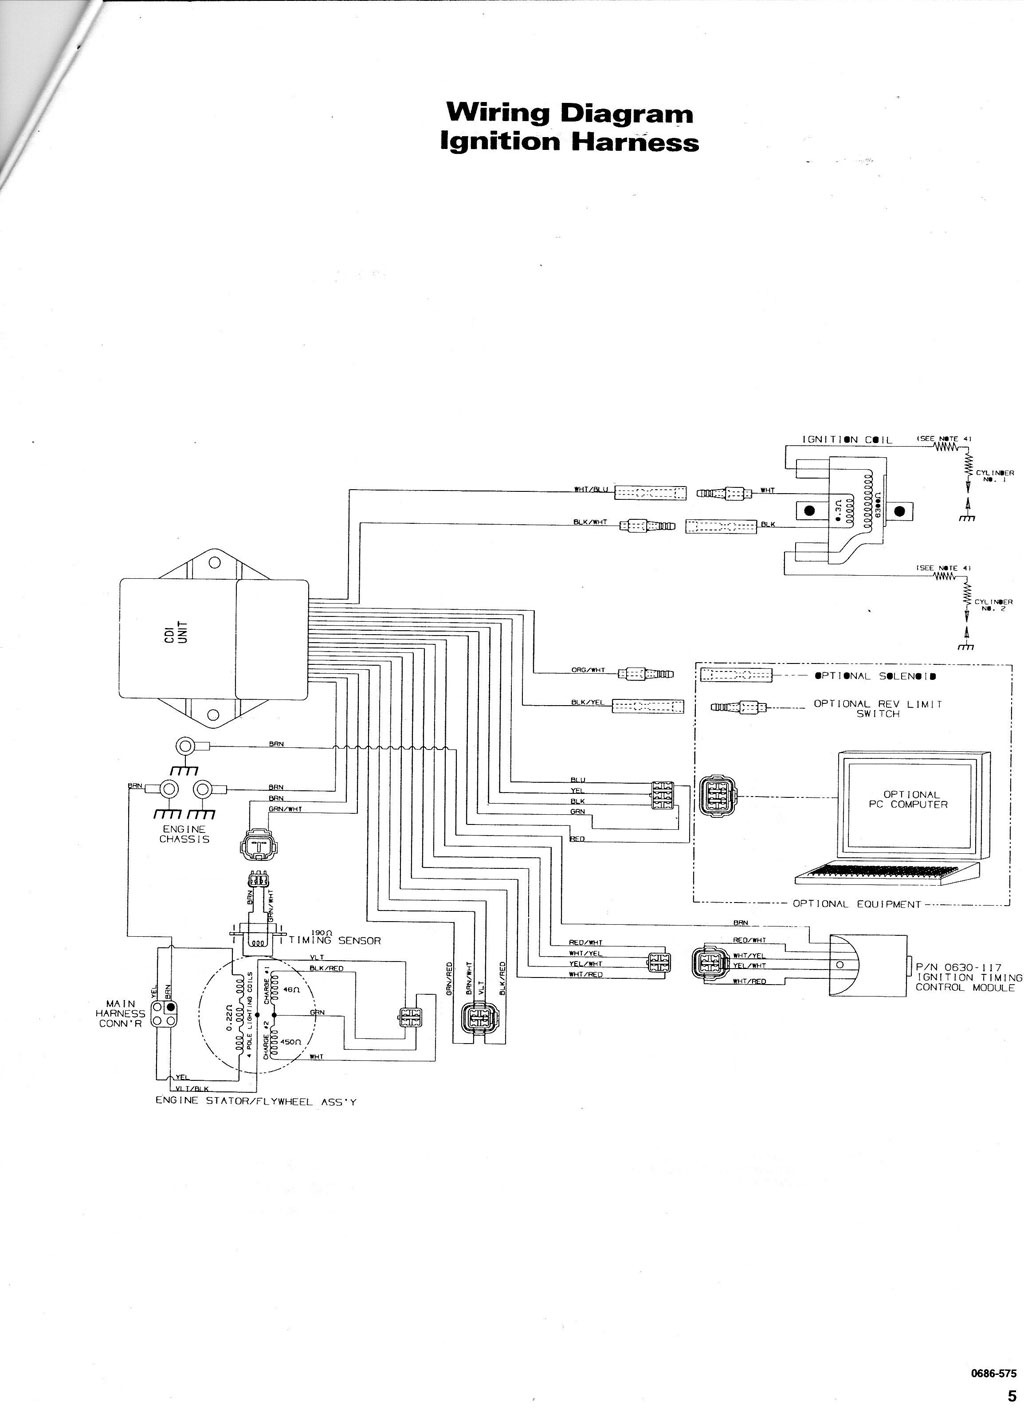 1998 Arctic Cat 98a4a Wiring Diagram